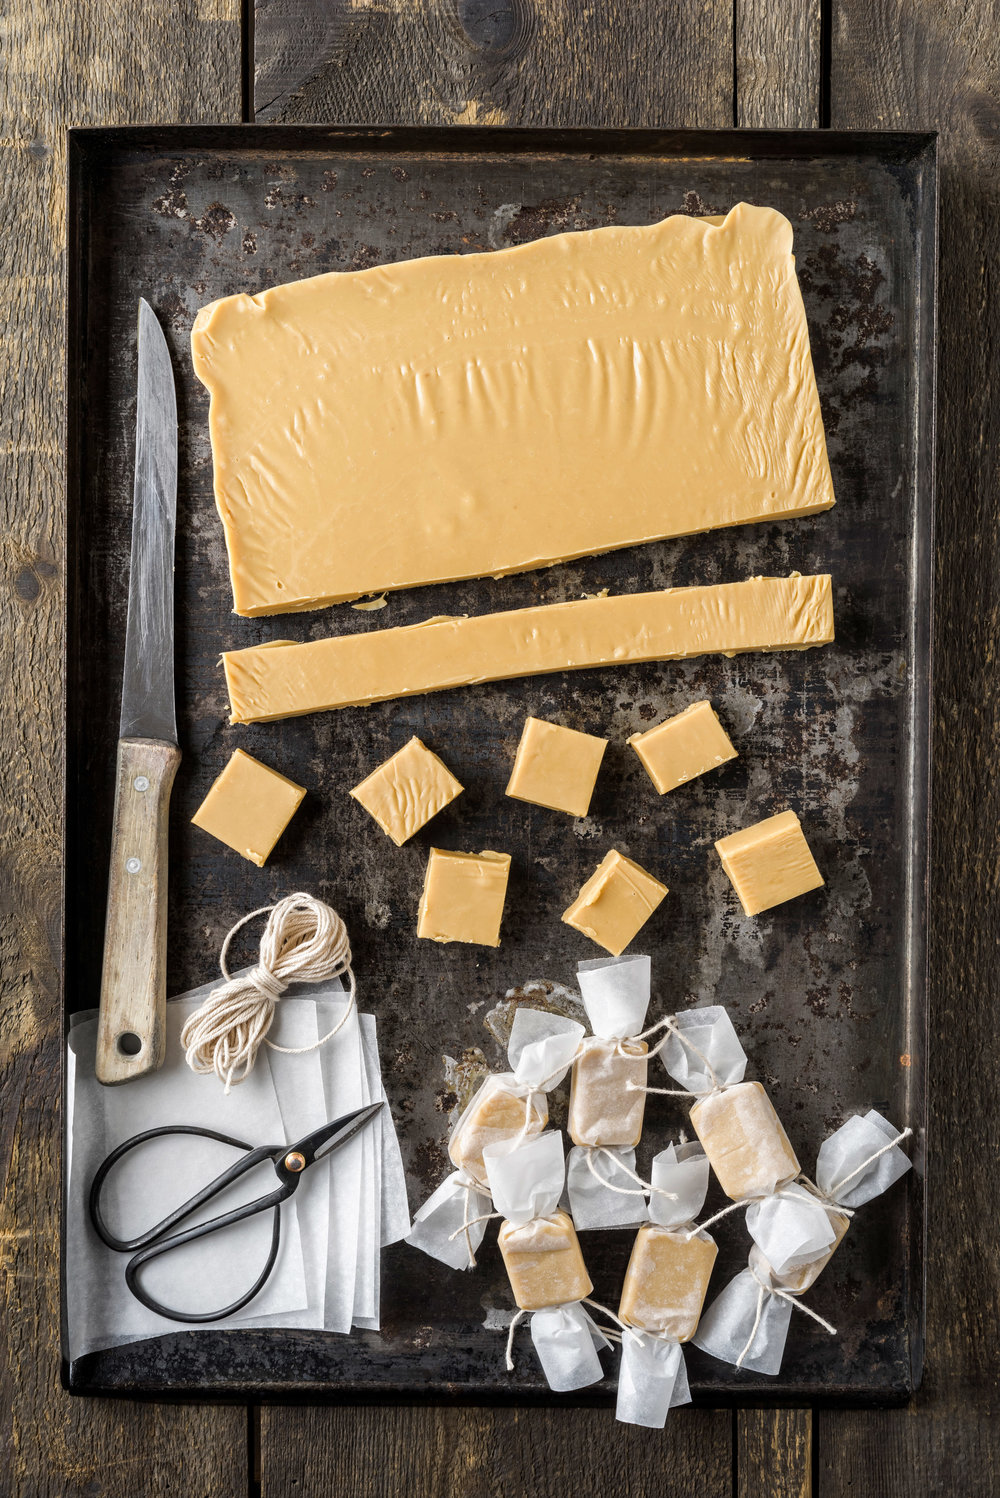 Karamell (Fudge) - foodphotolove.de